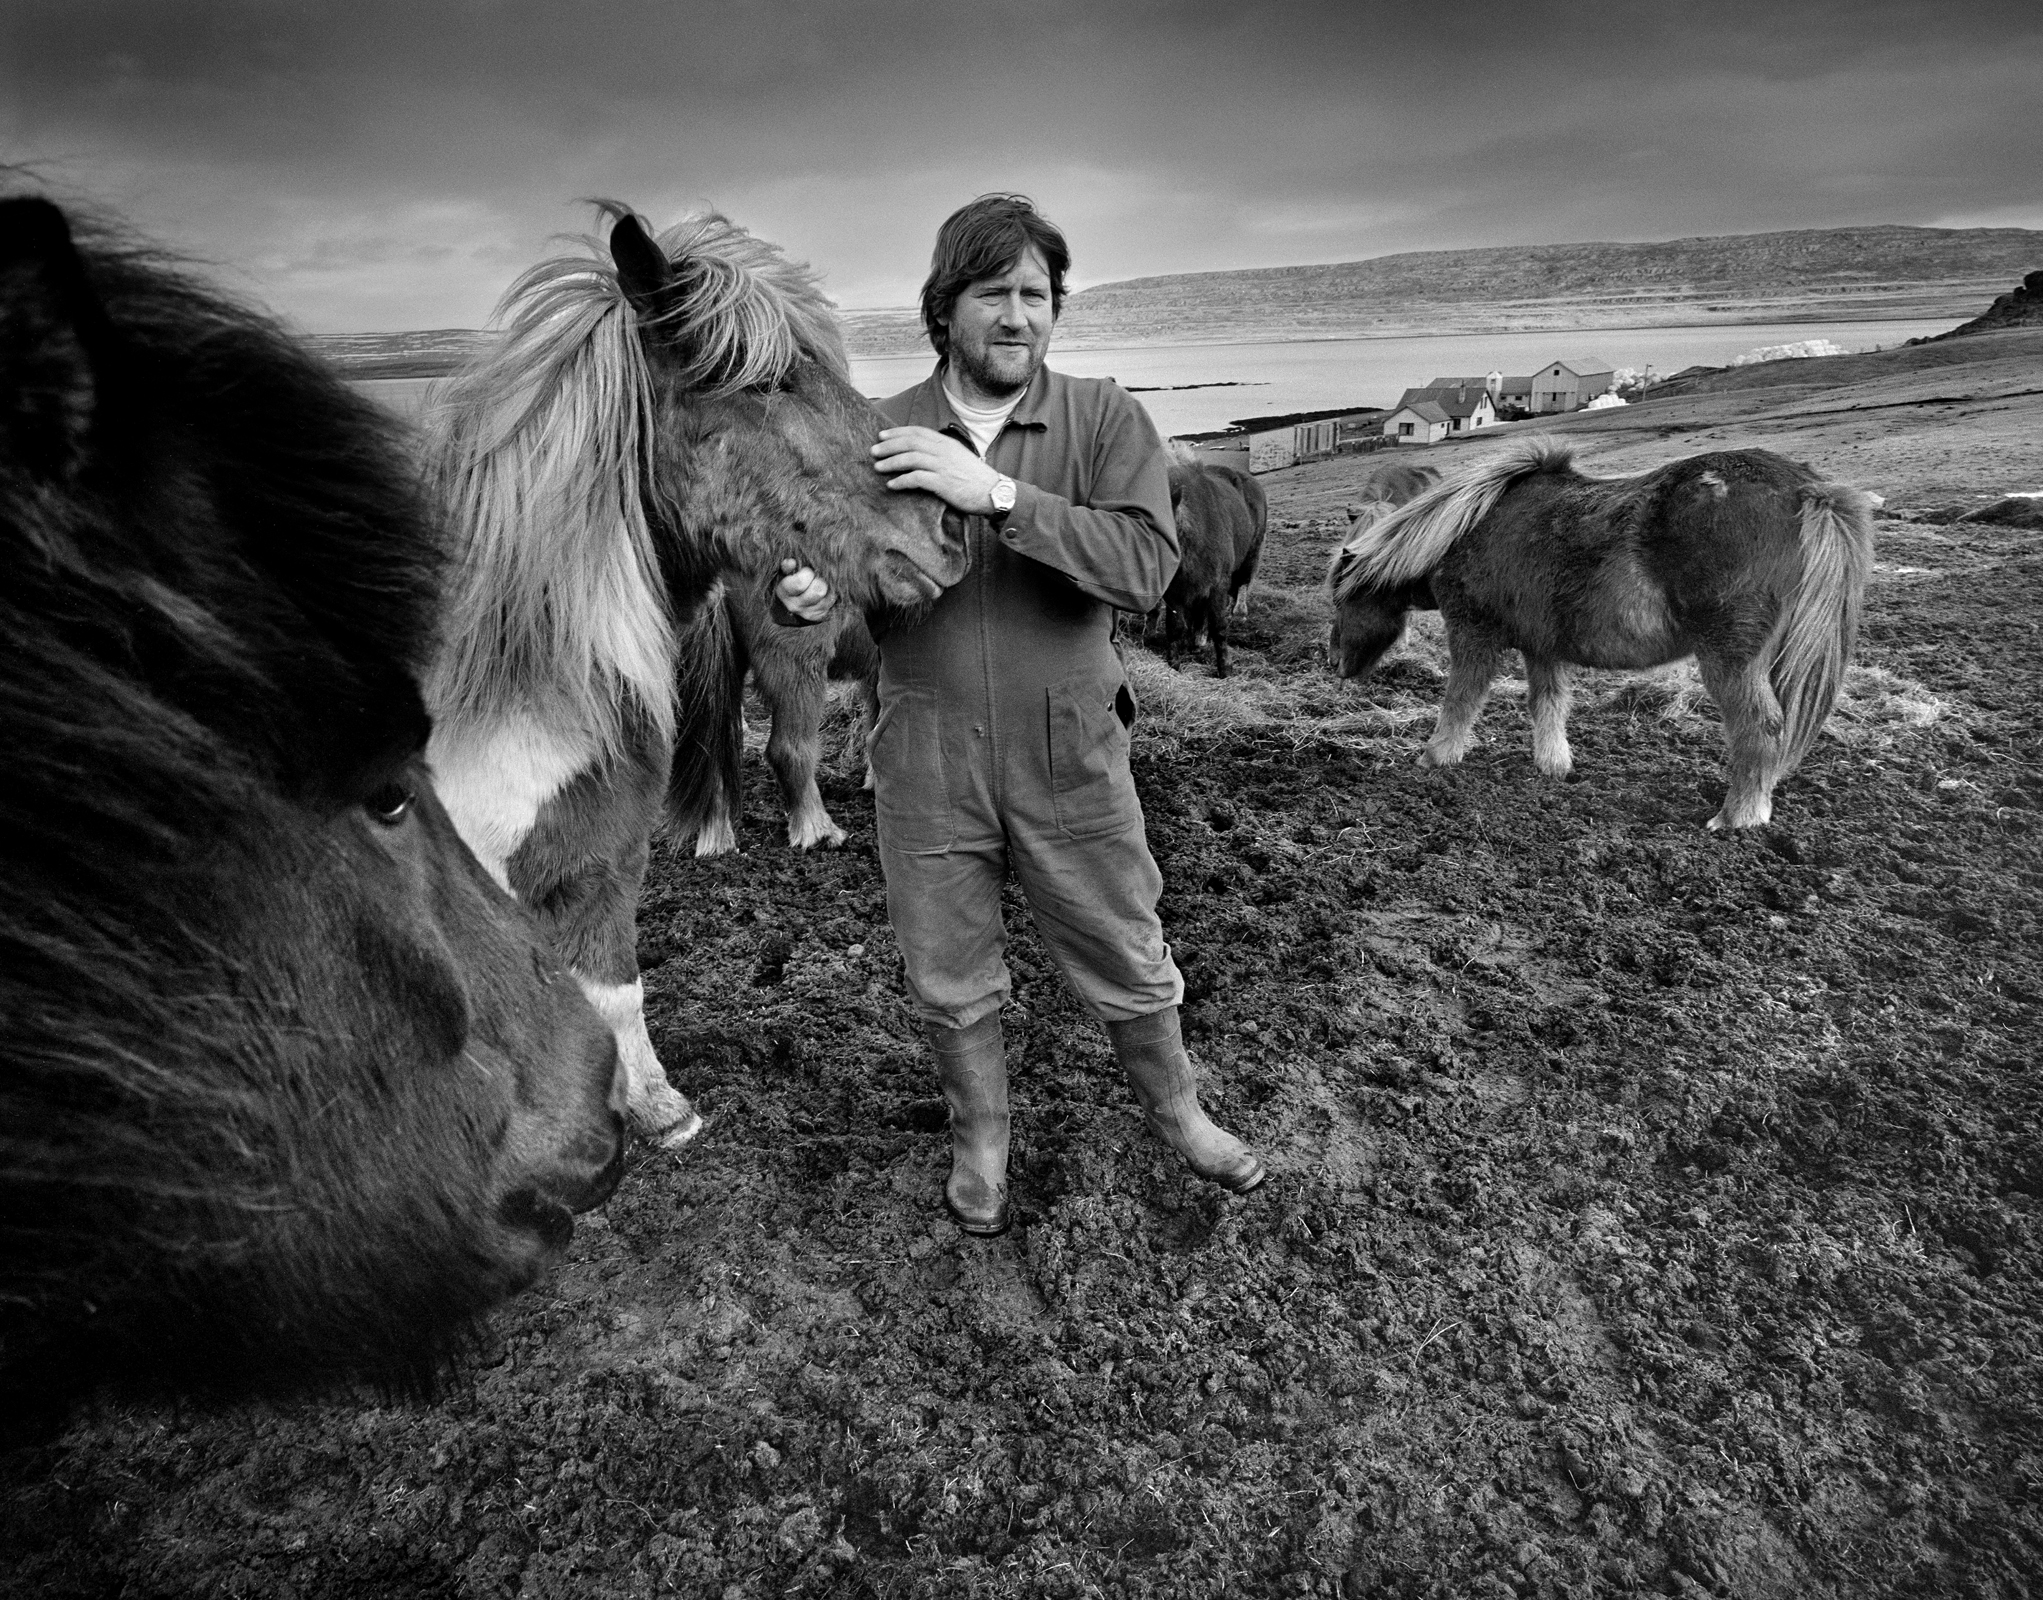 Vanishing Culture – Westfjords Photographs by Þorvaldur Örn Kristmundsson